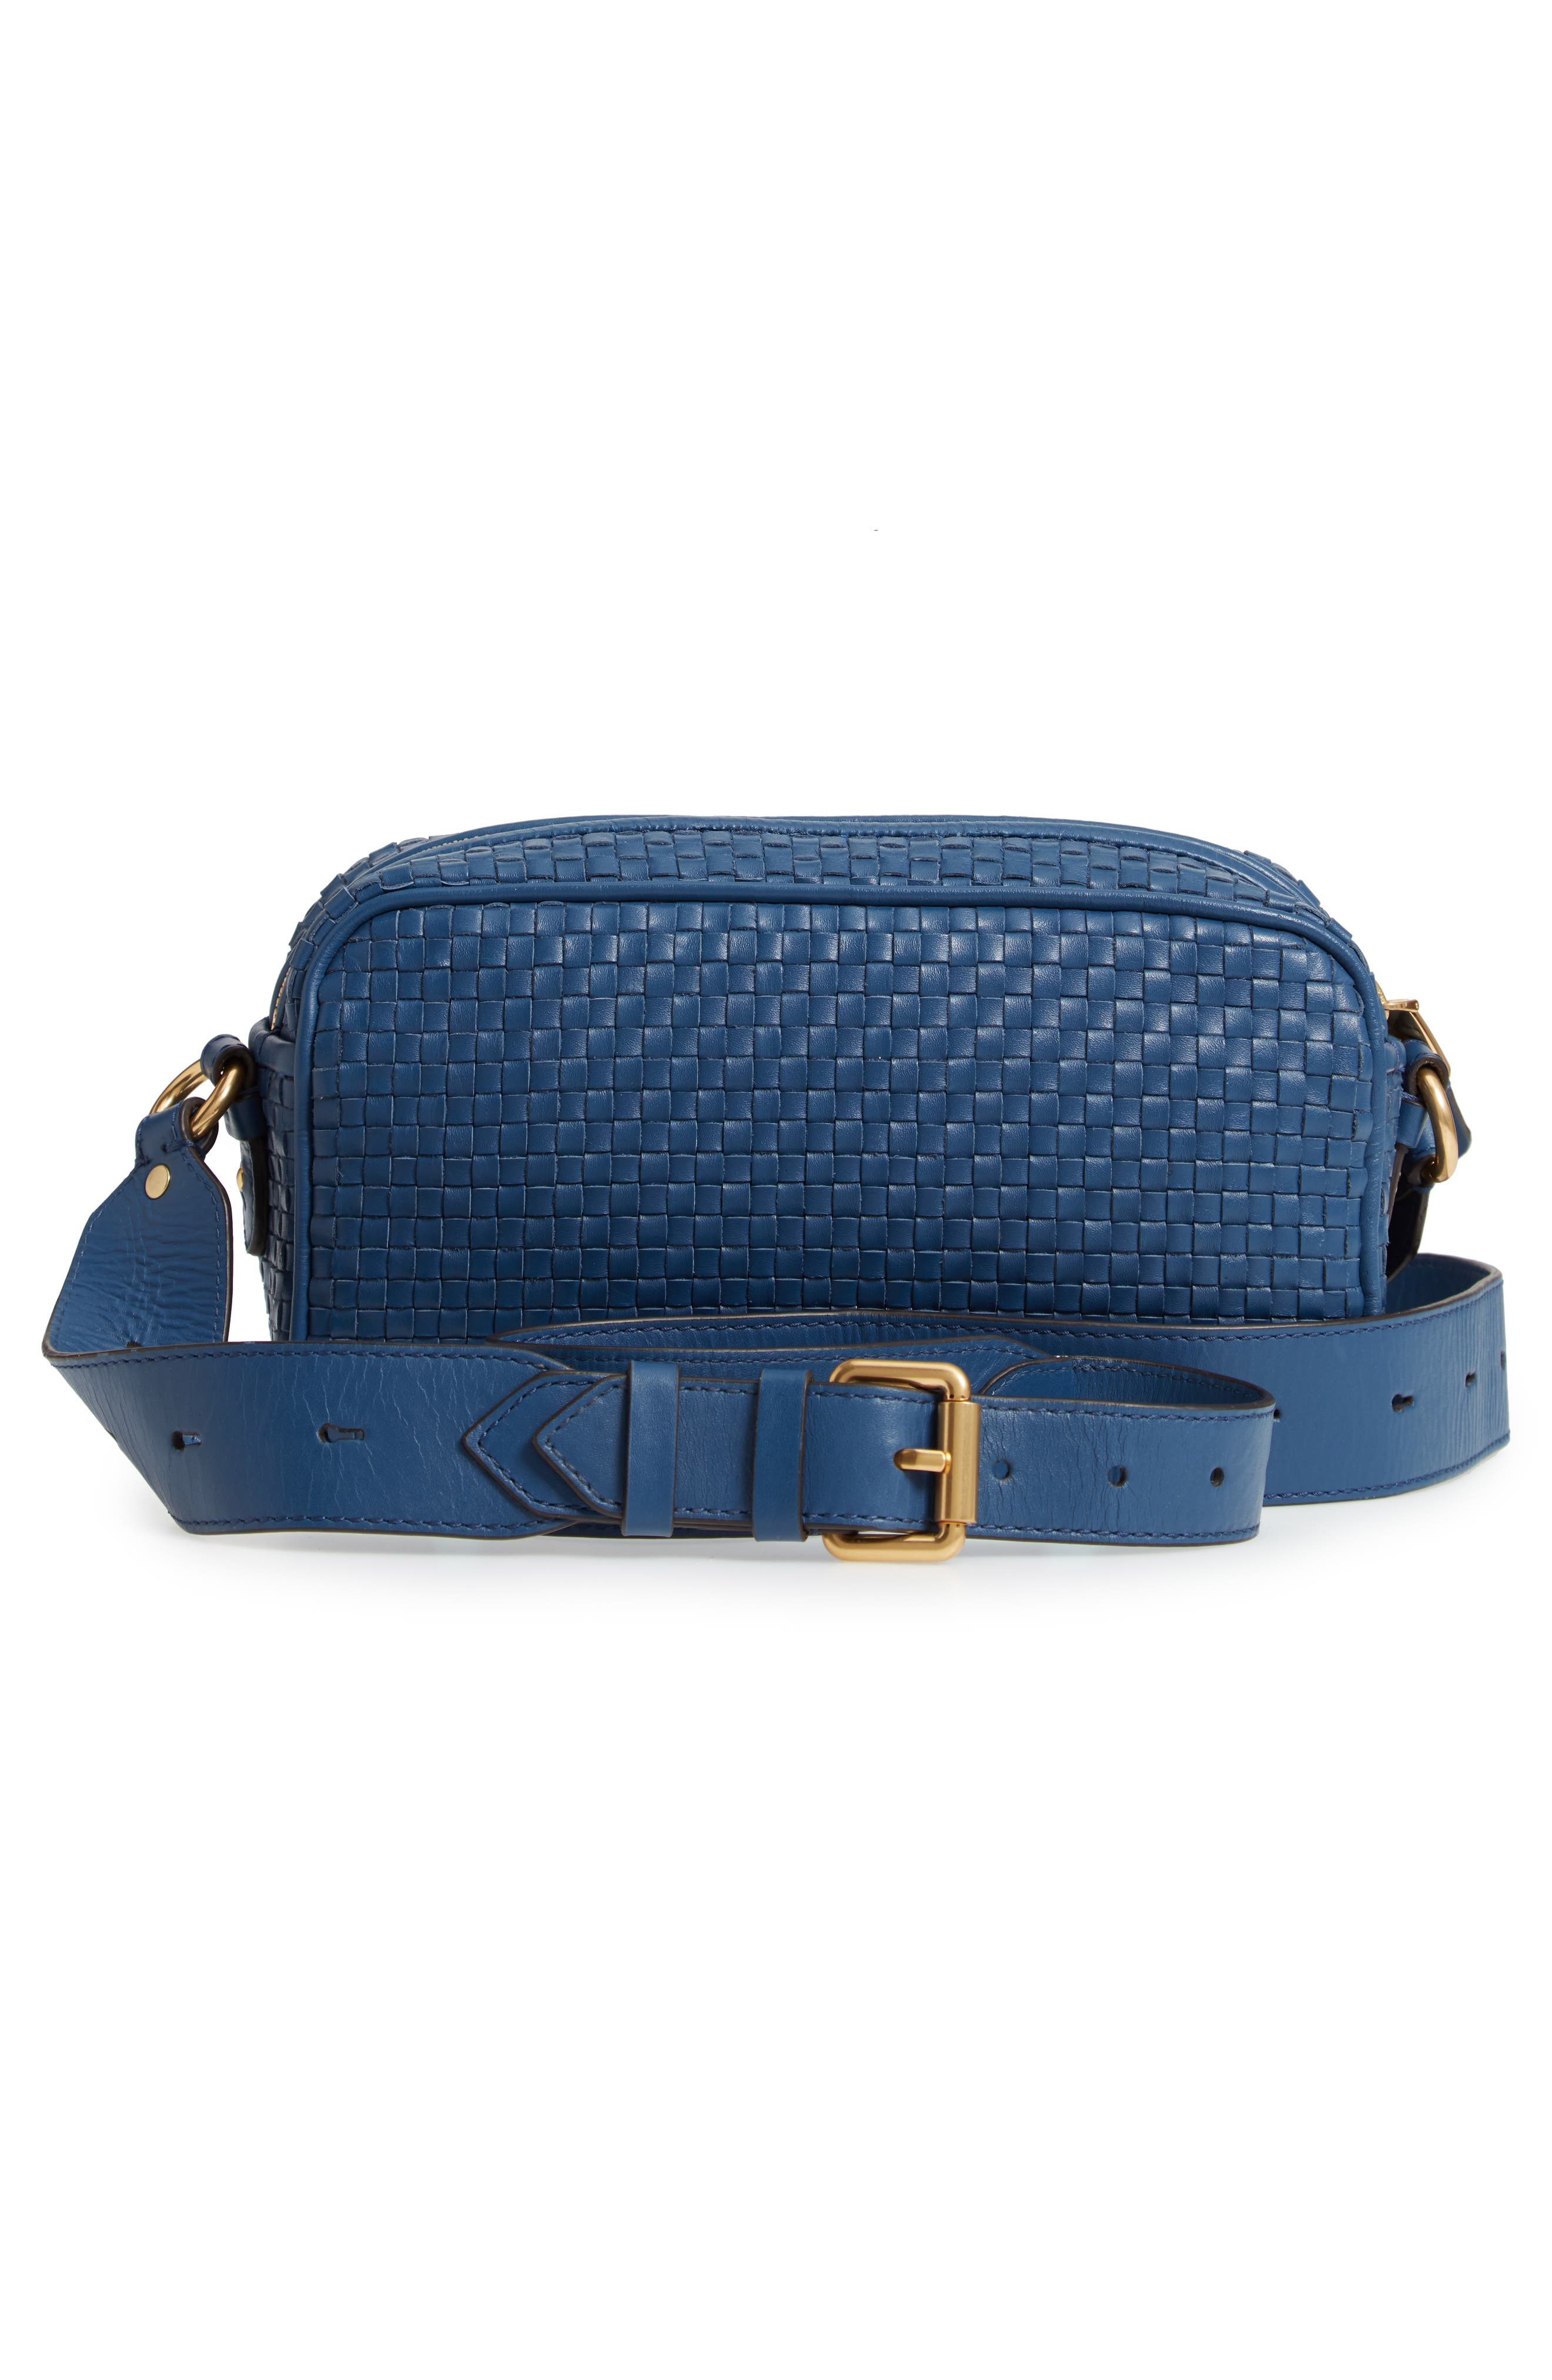 Zoe RFID Woven Leather Camera Bag,                             Alternate thumbnail 3, color,                             Navy Peony